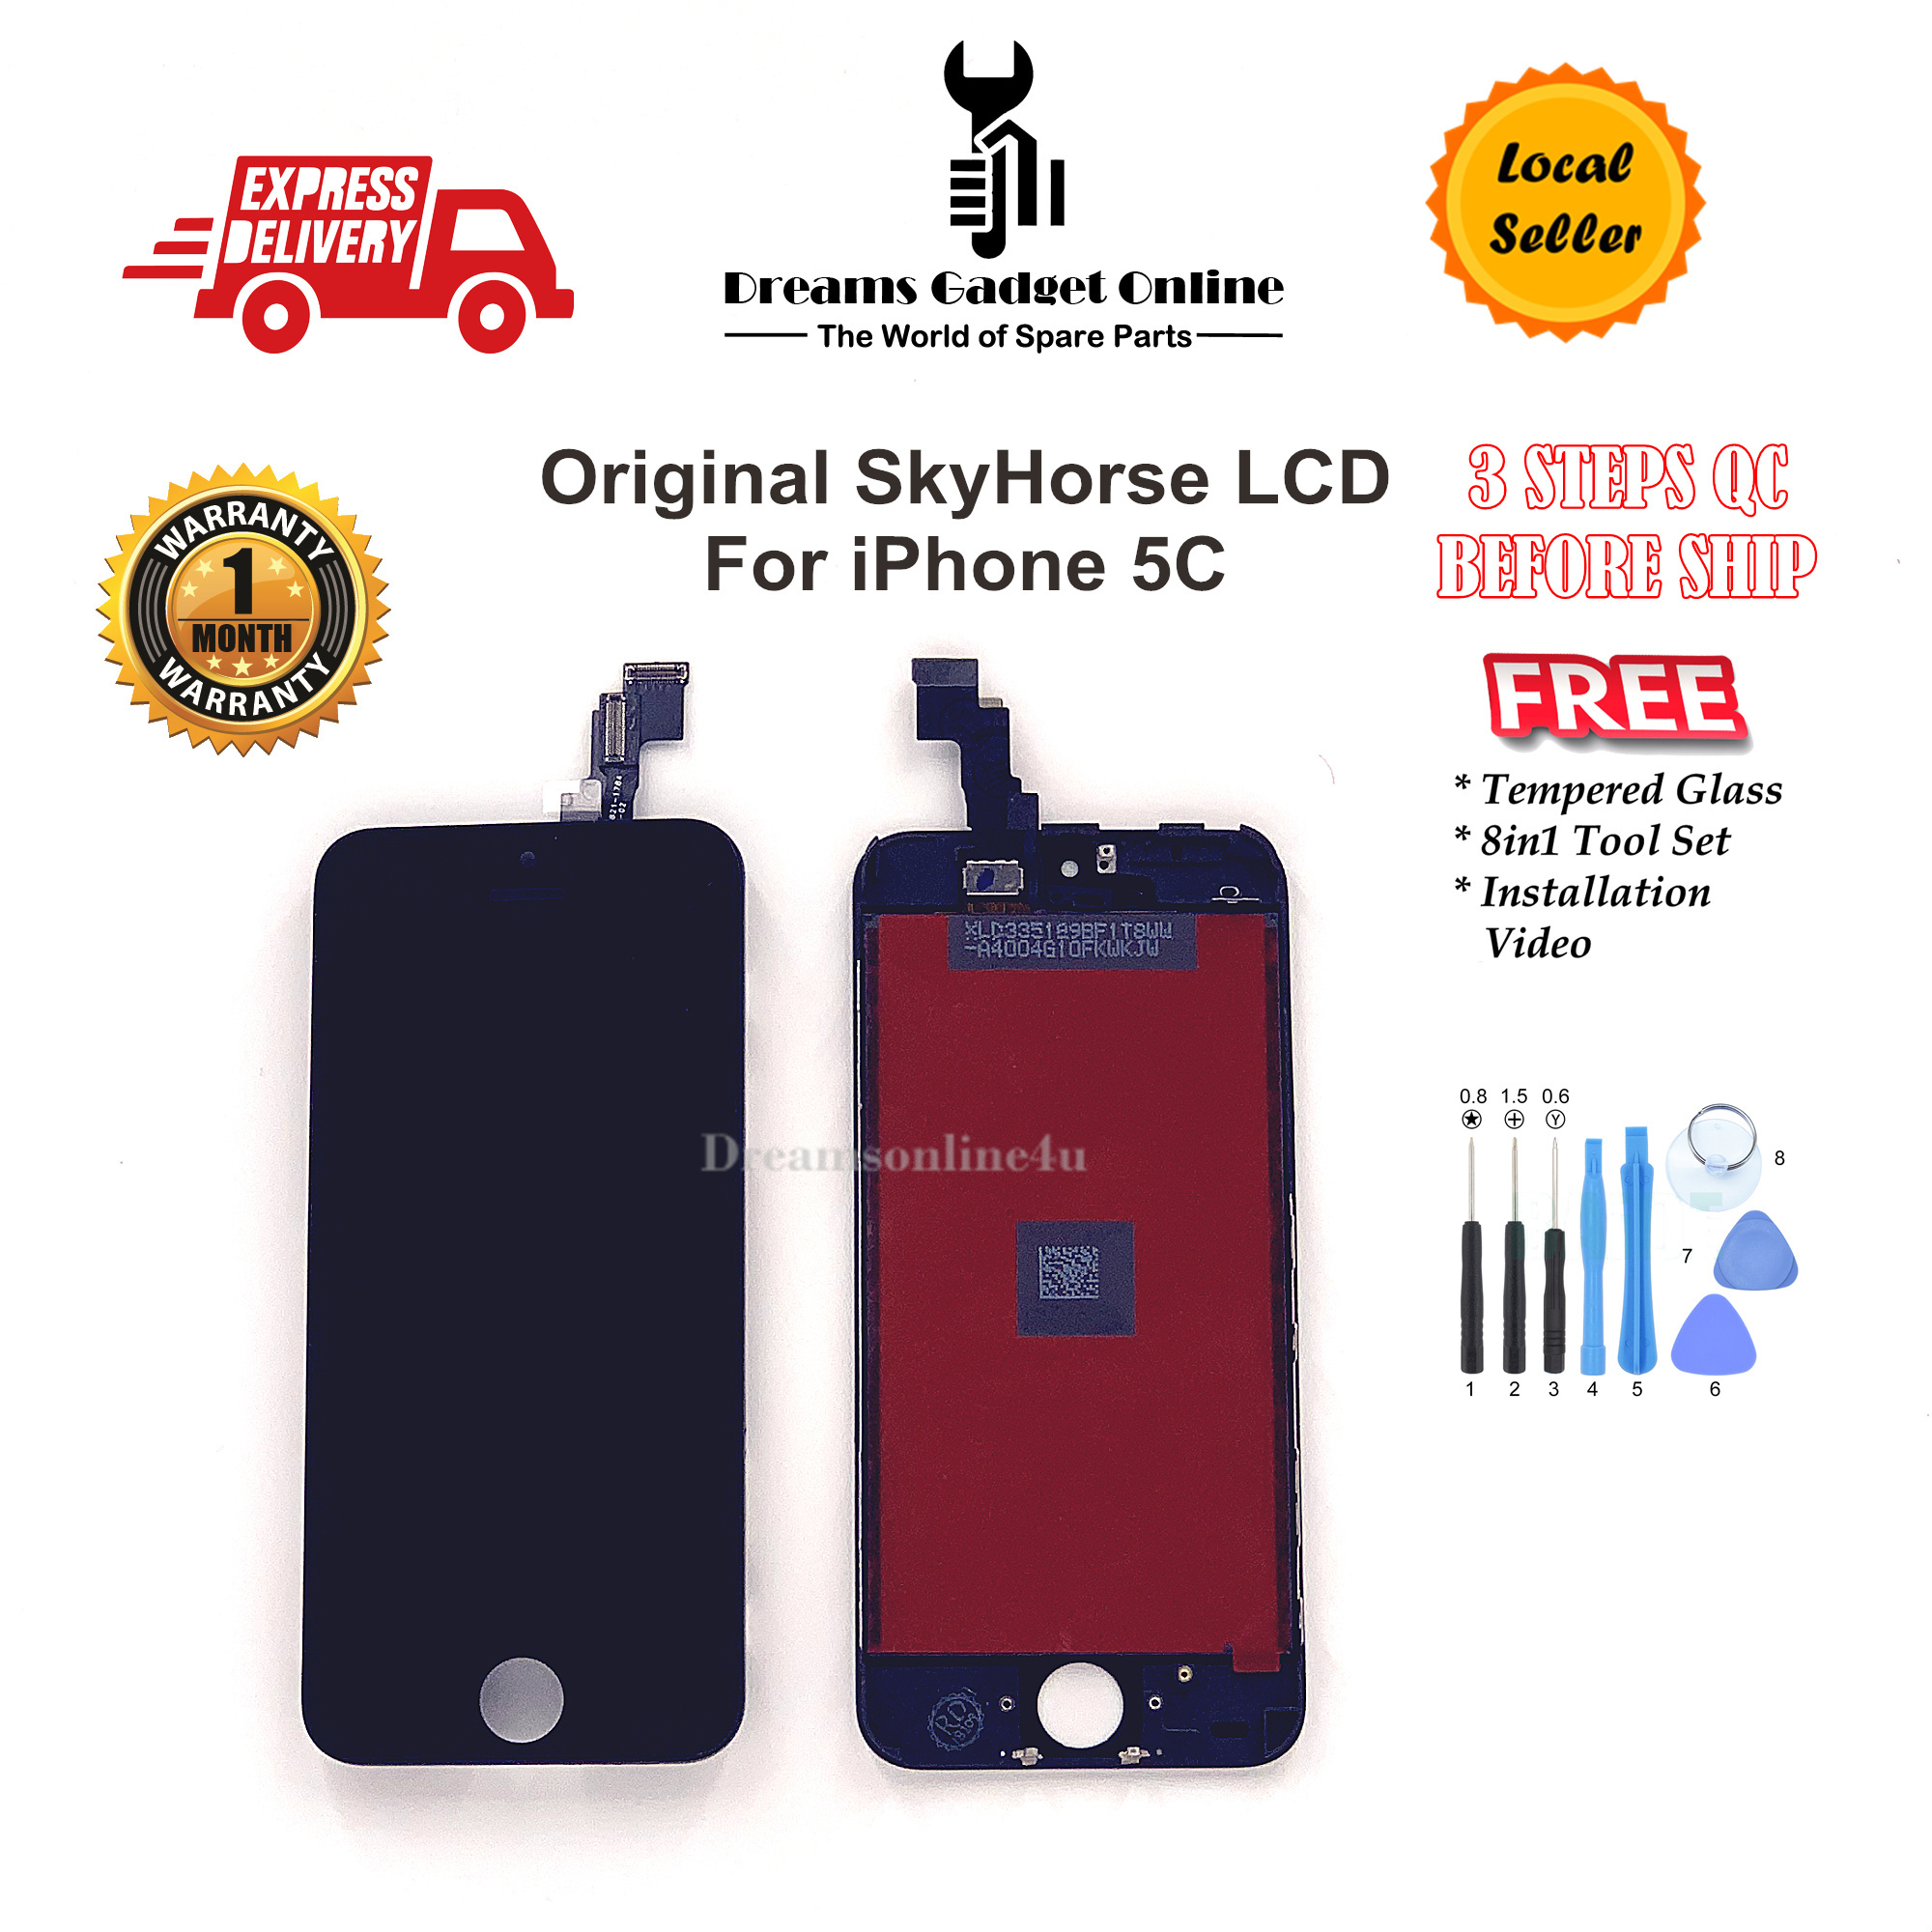 iPhone 5C Skyhorse(1).jpg